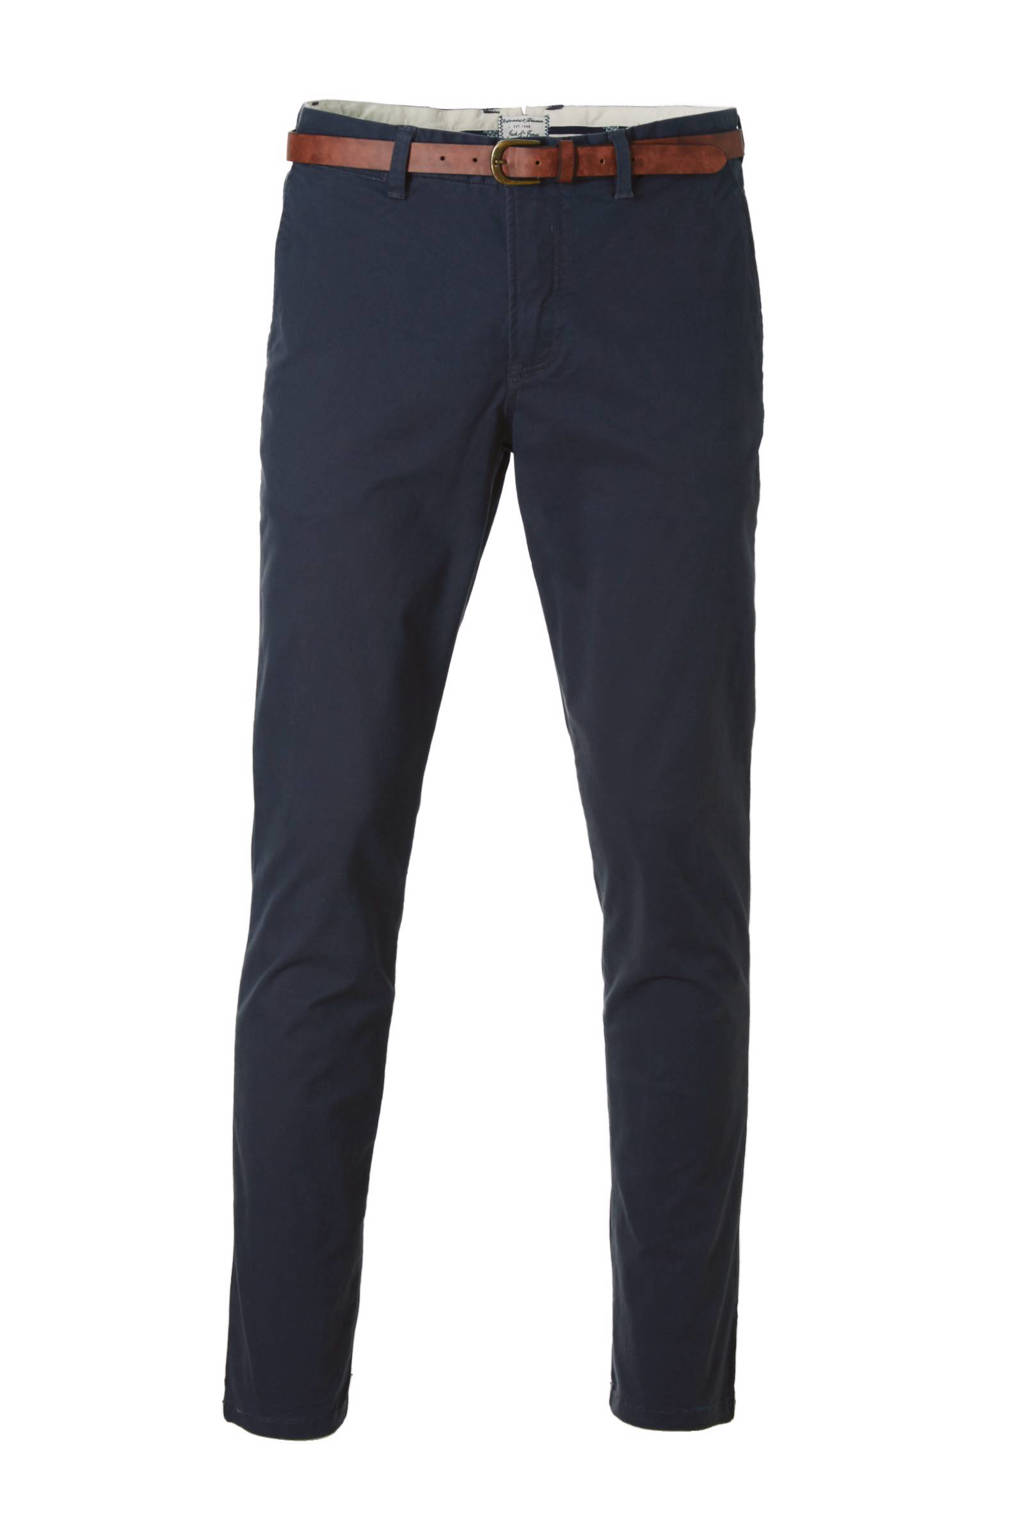 JACK & JONES JEANS INTELLIGENCE Cody Spencer regular fit chino, Donkerblauw